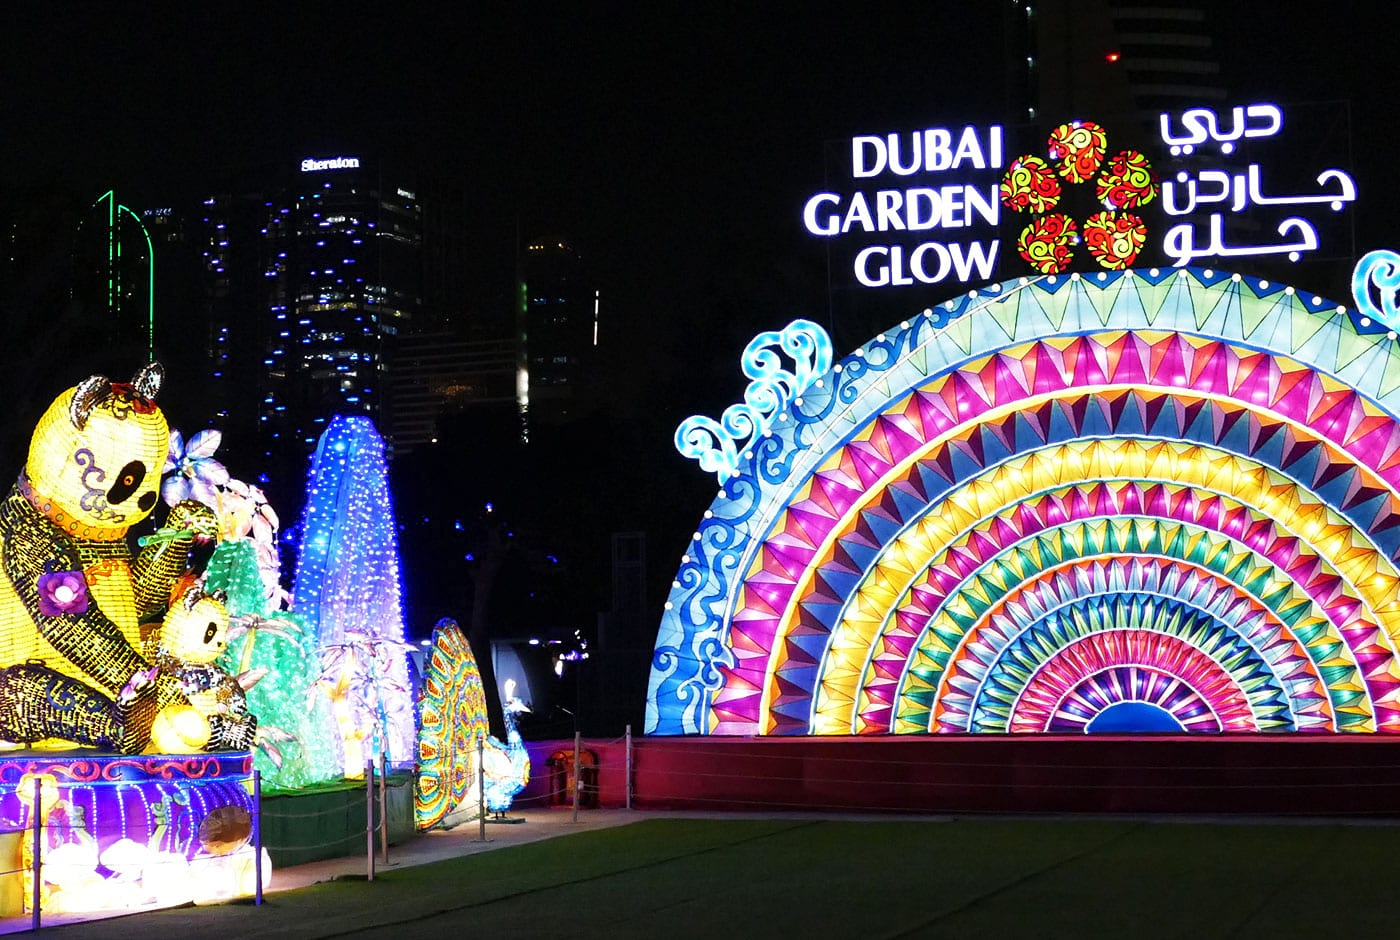 Dubai Garden Glow Compare Tickets For One Of Dubai S Top Attractions With Ticketlens